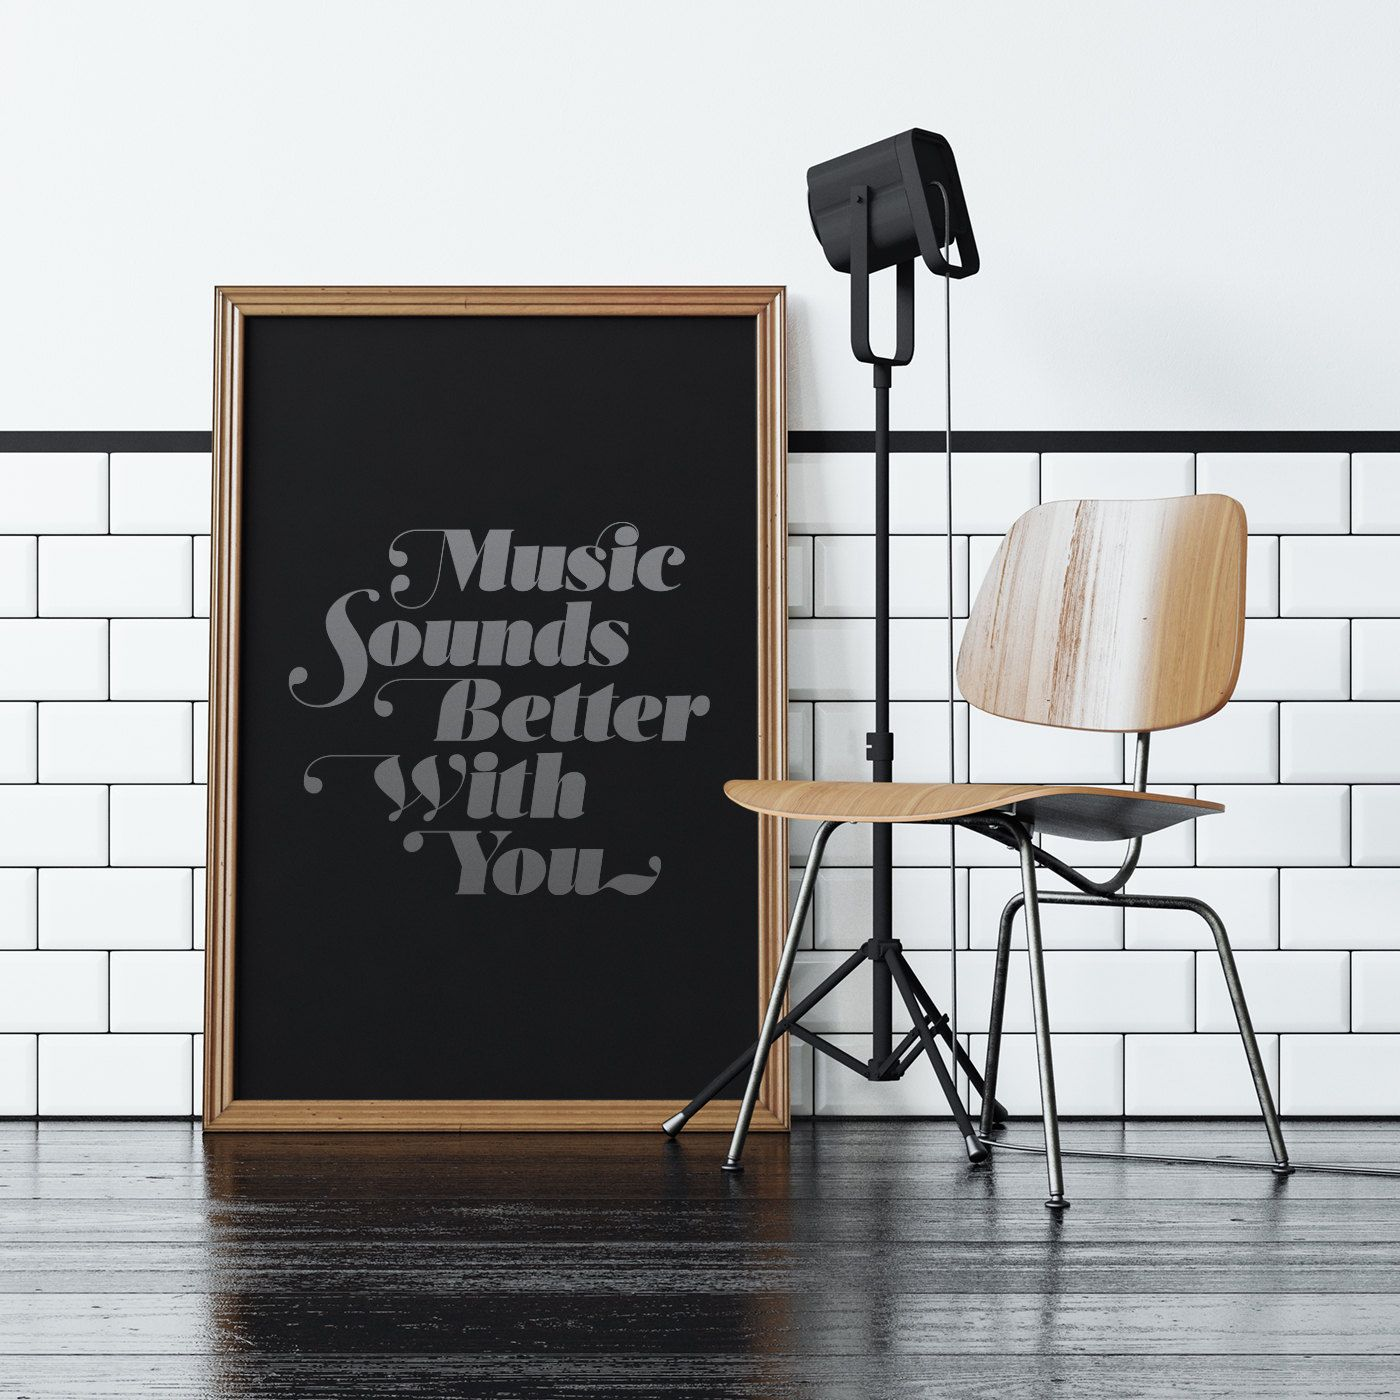 Music sounds better with you limited edition screen print